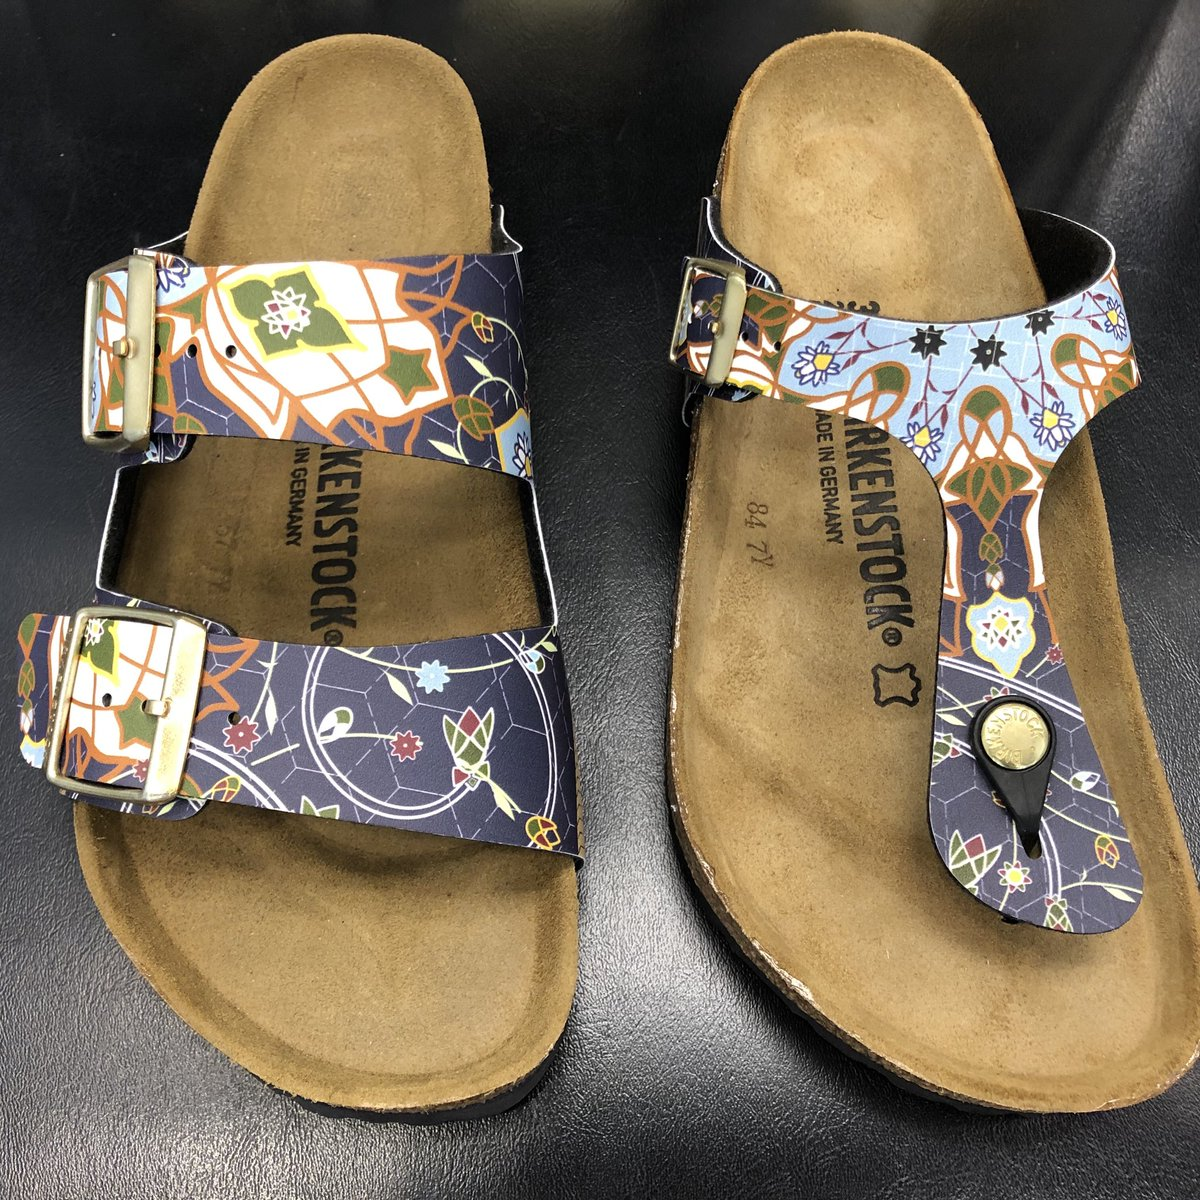 test Twitter Media - We're dreaming about sandal weather today. #sigh #onstorm #ourdreamswillcometrueeventually #birkenstock #birks @LansdownePlace #ptbo https://t.co/eCrTpZ8QhO